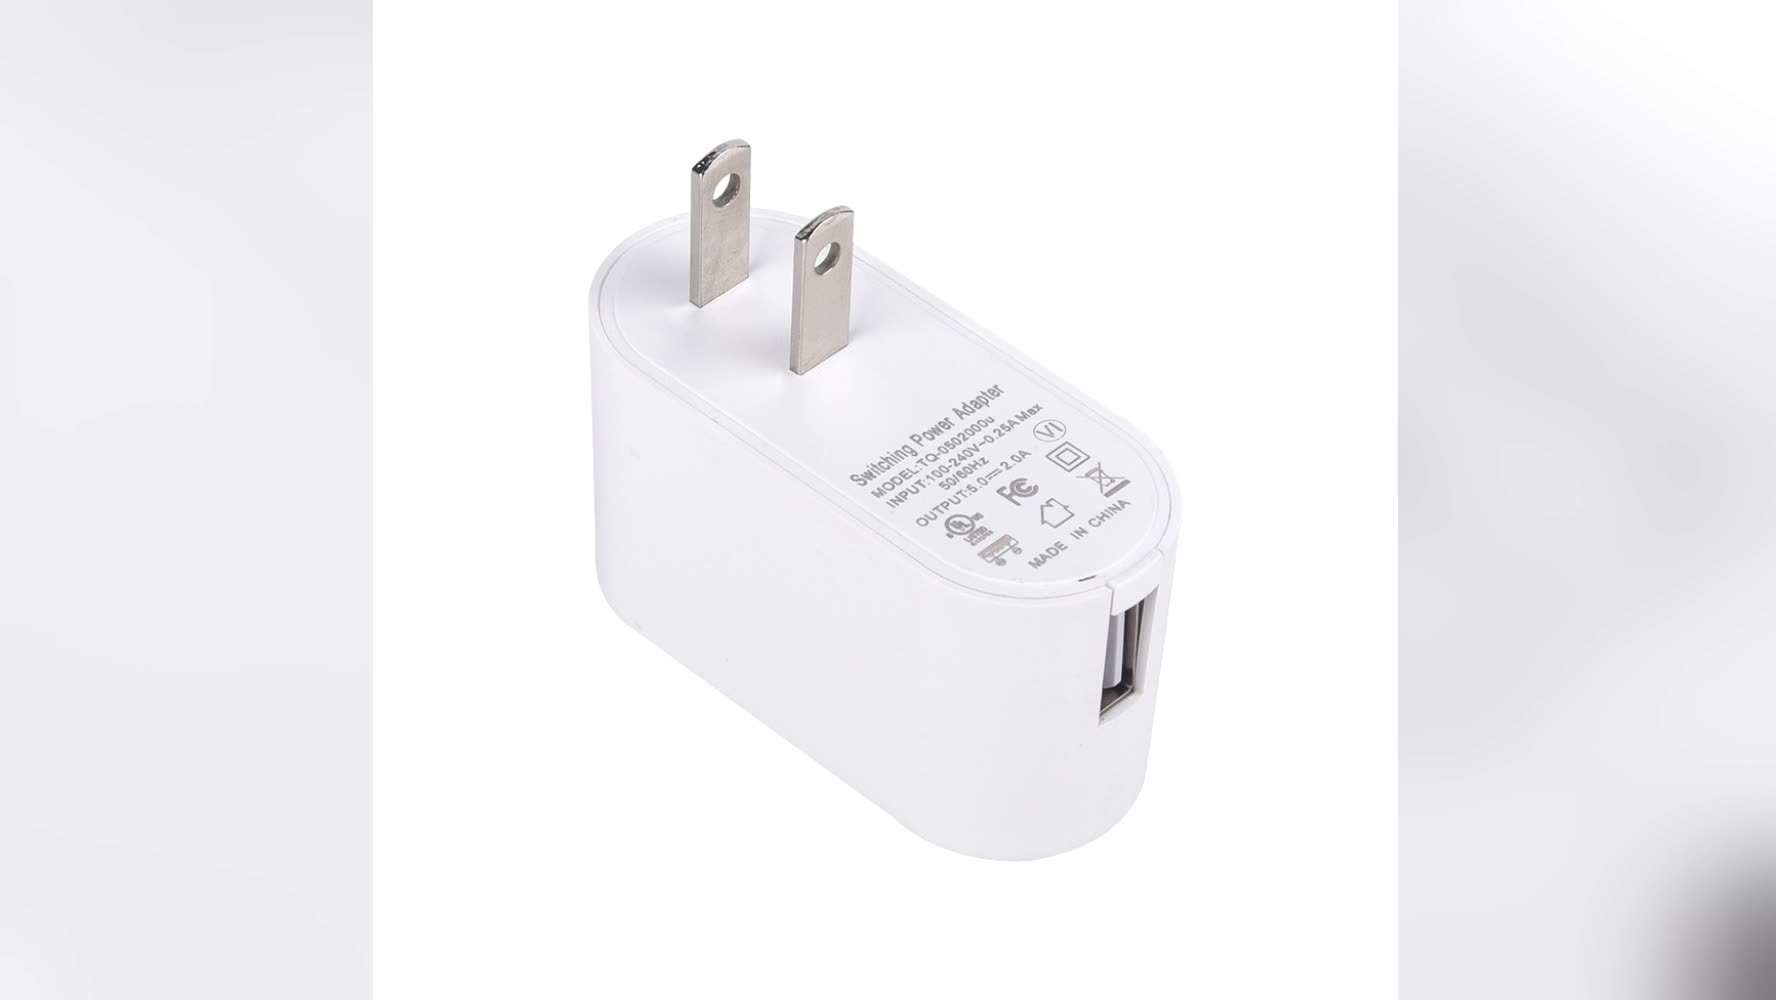 usb wall charger eu plug /usb charger adapter 5v 0.5a ,1a ,1.5a ,2a 2.4a